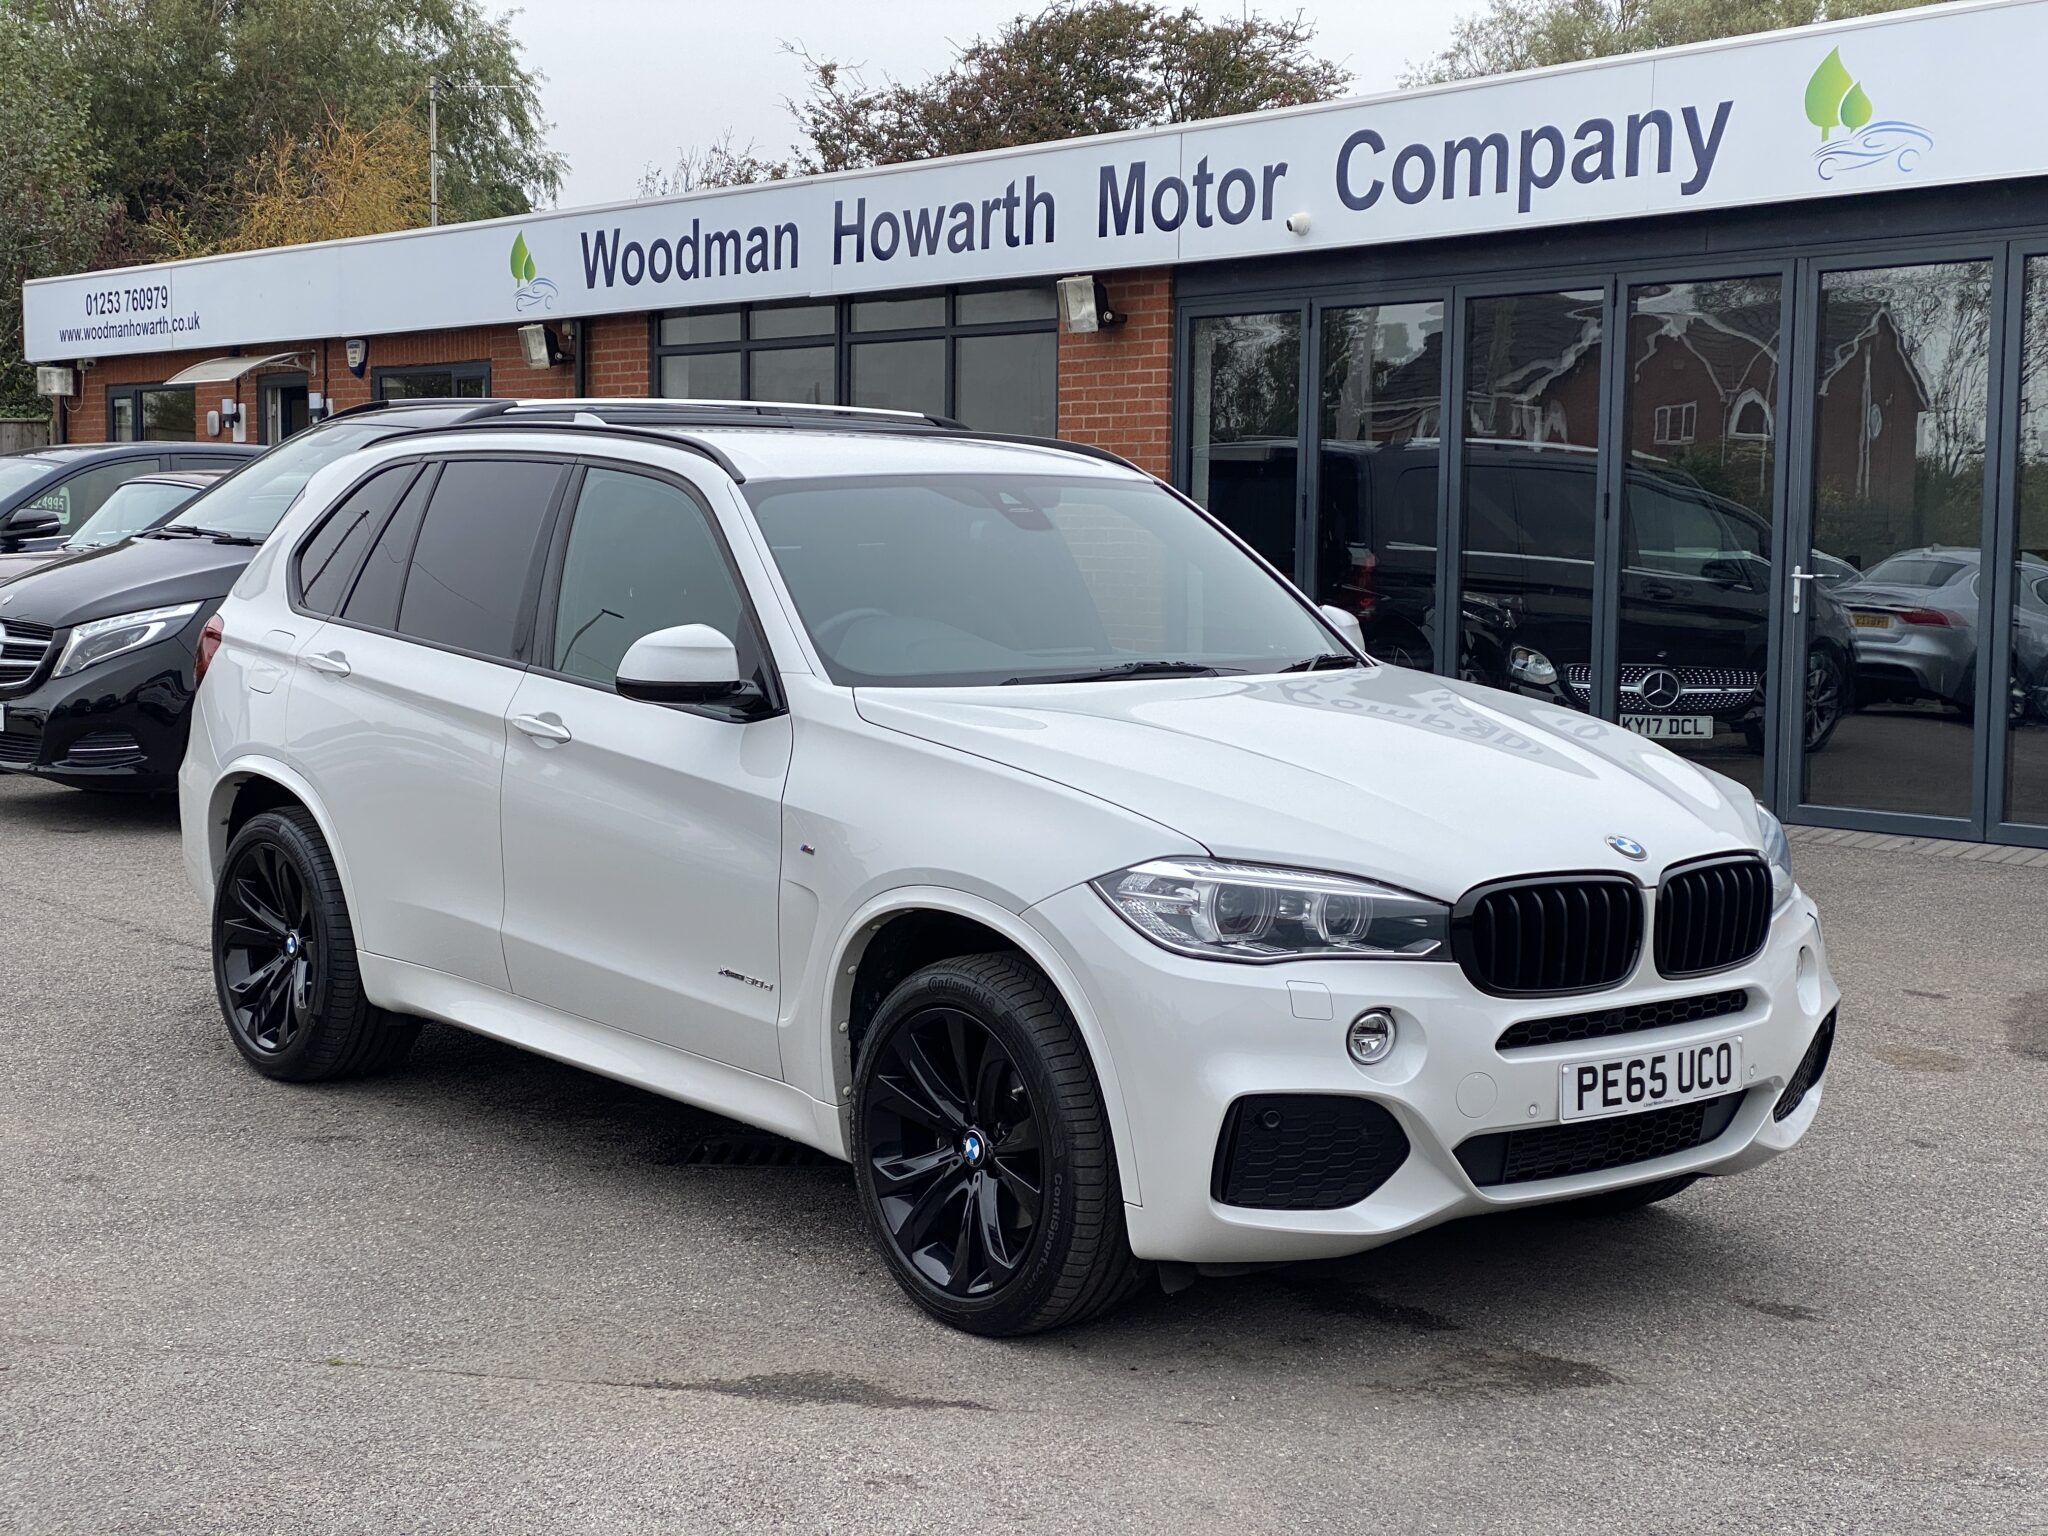 2015 65 BMW X5 30D M SPORT AUTOMATIC 4X4 Only 23K Mls FSH 20